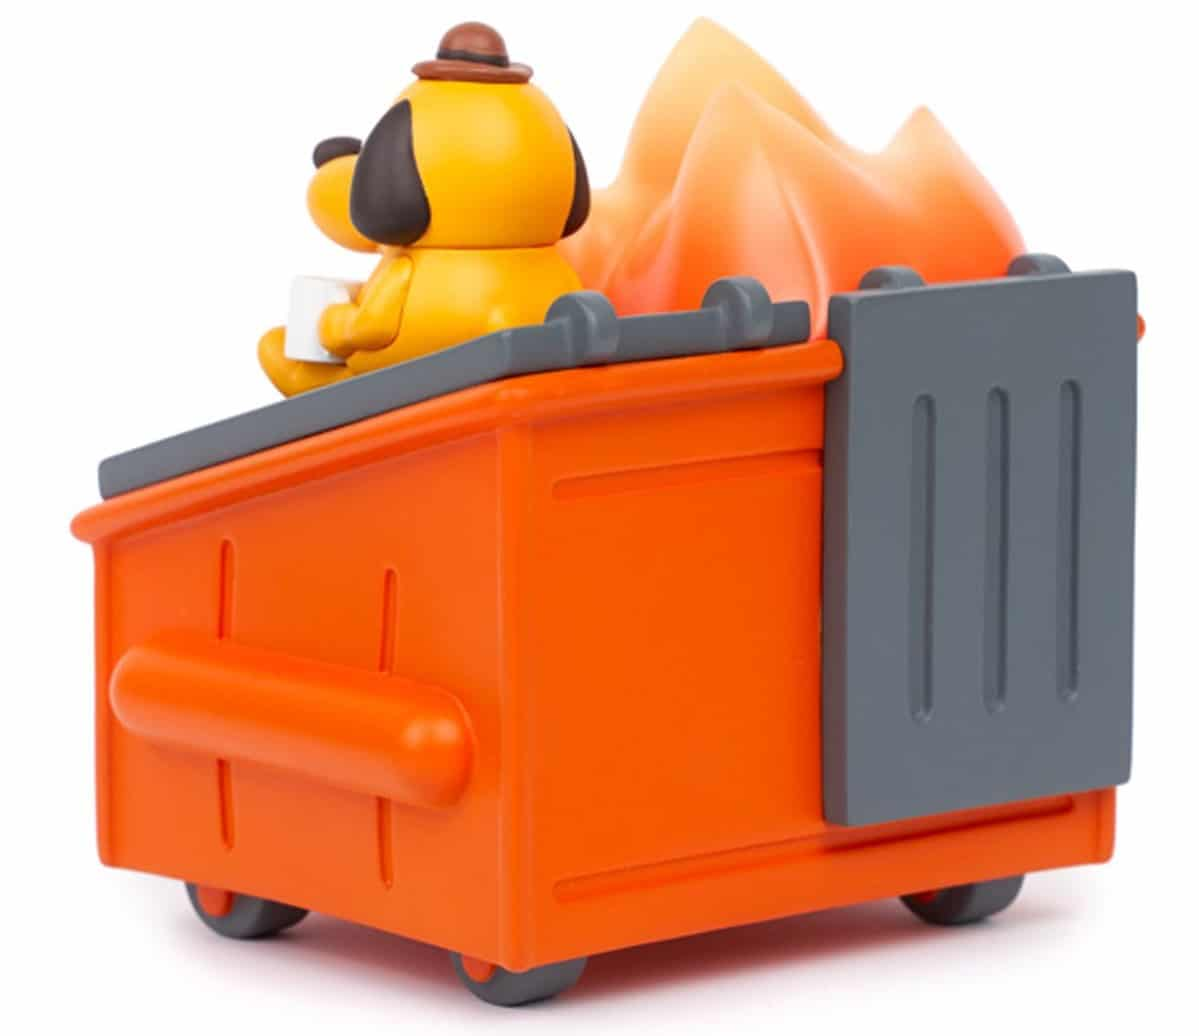 Dumpster Fire meets This is Fine dog in this adorable vinyl figure 19